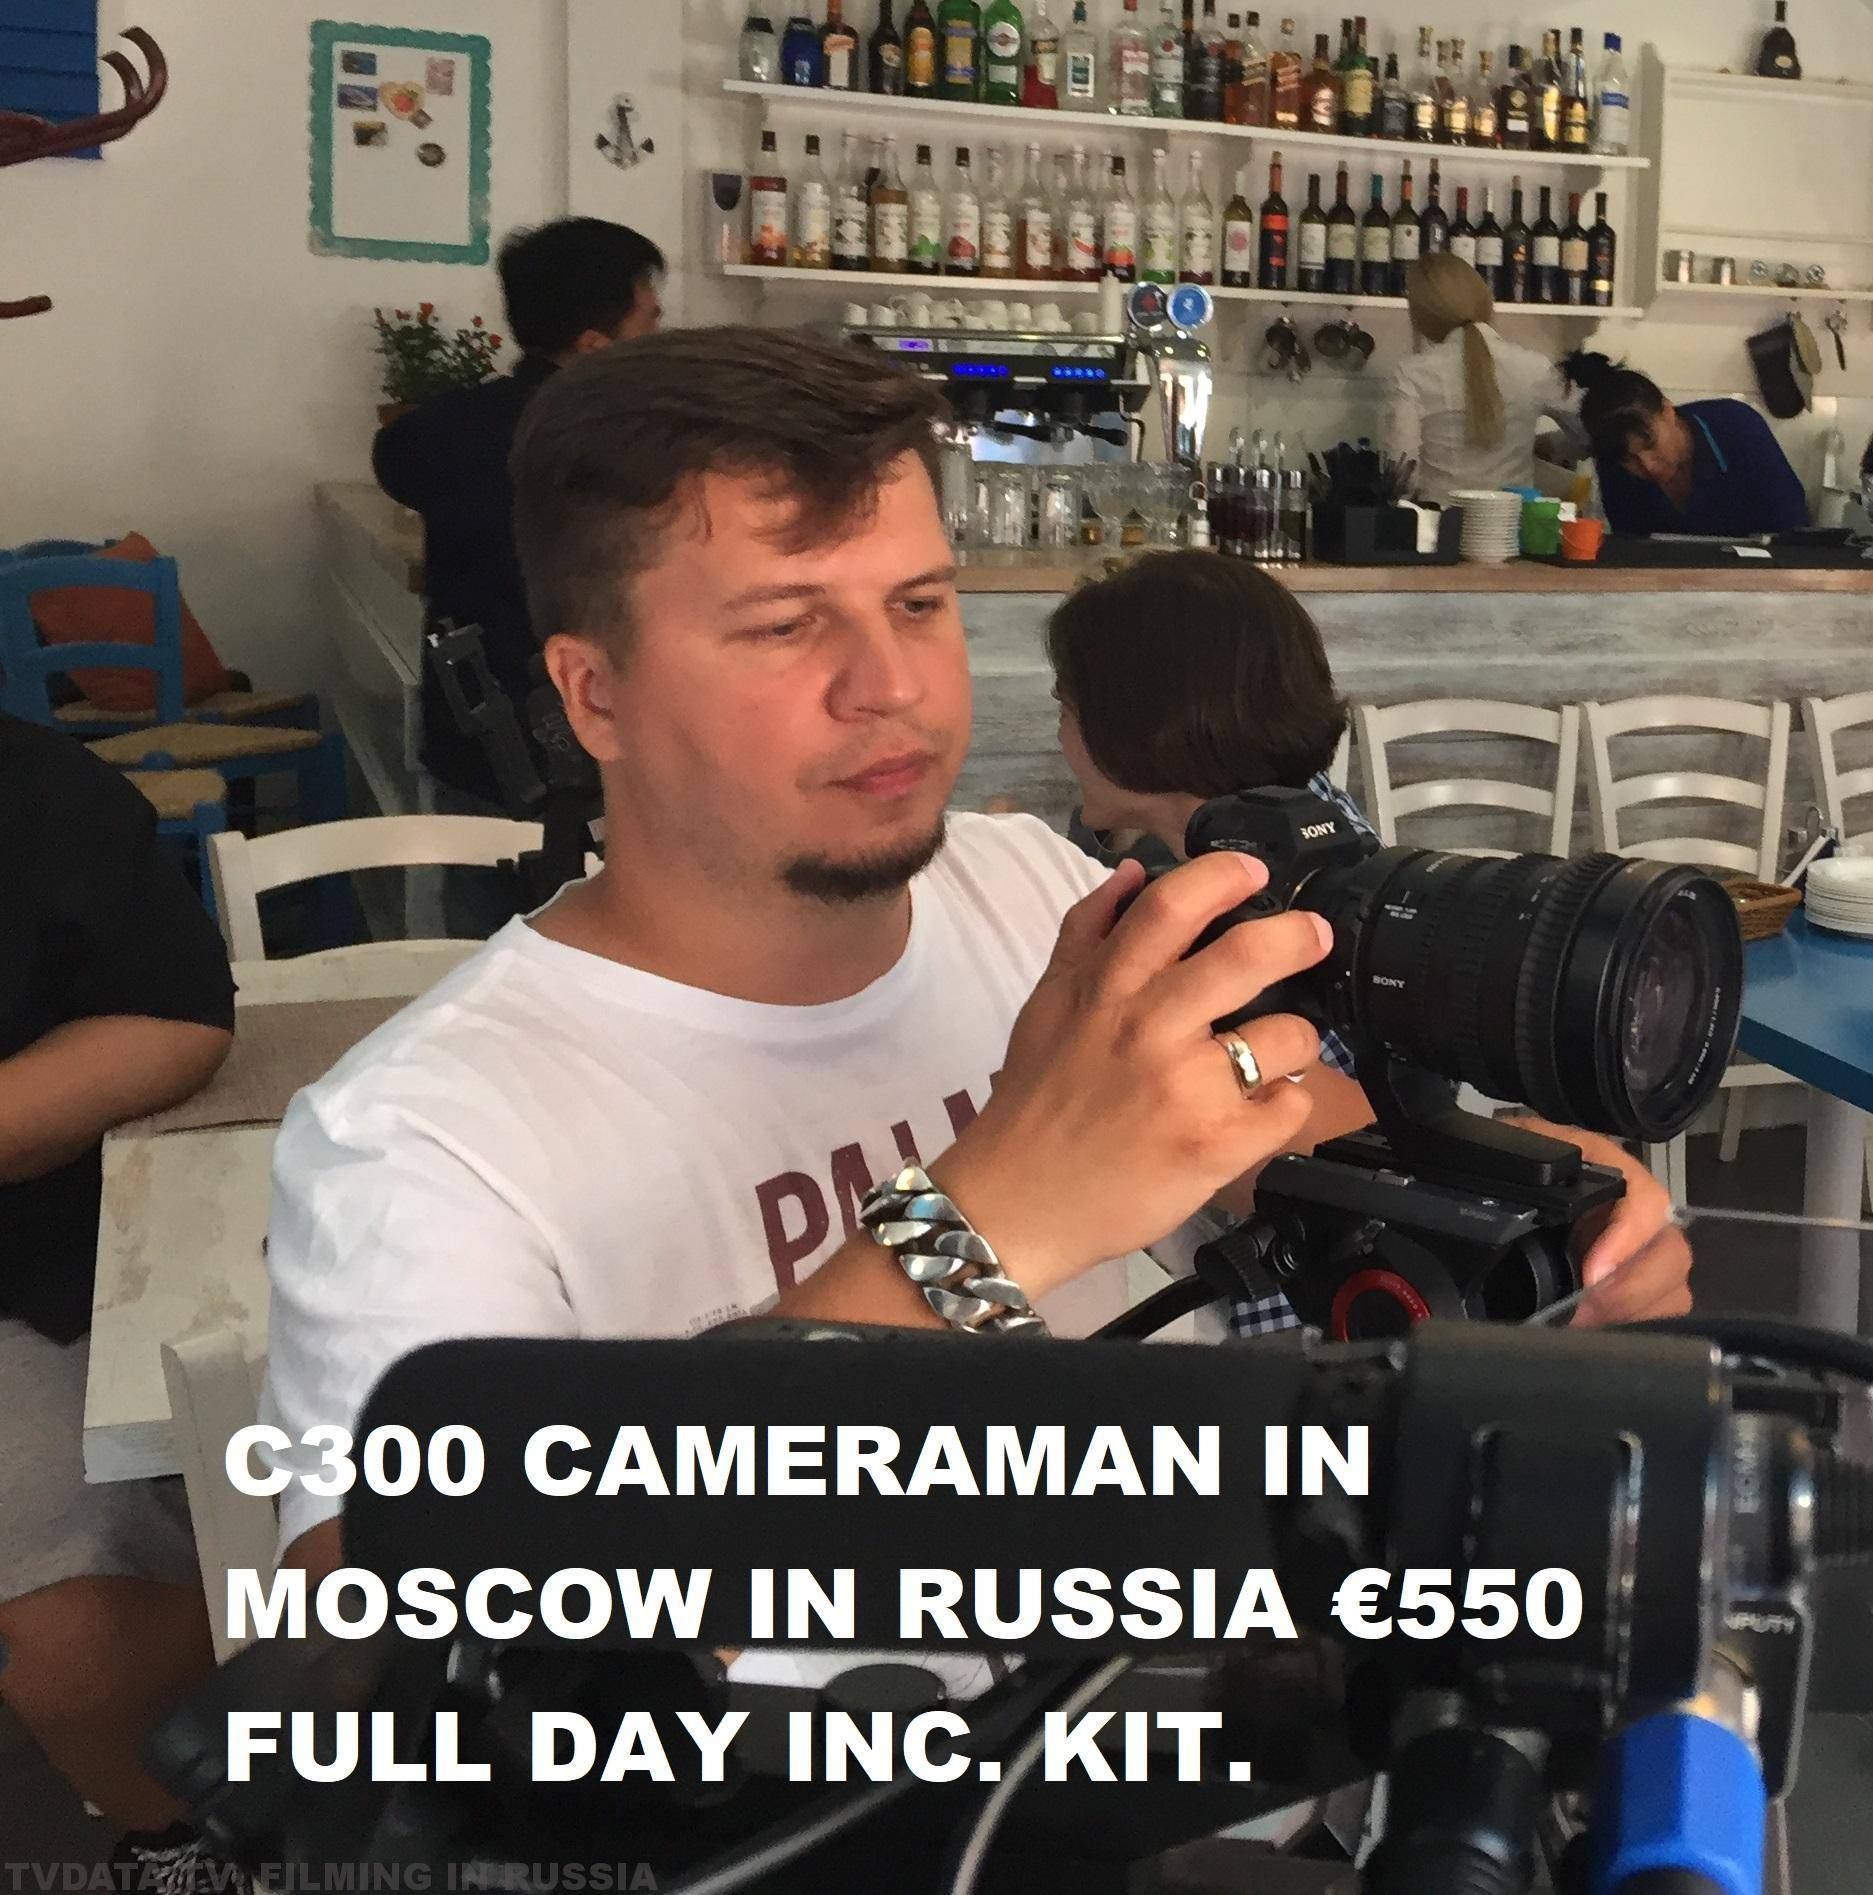 C 300 CAMERAMAN IN MOSCOW IN RUSSIA €650 FULL DAY INC. KIT. CAMERAMAN@TVDATA.TV